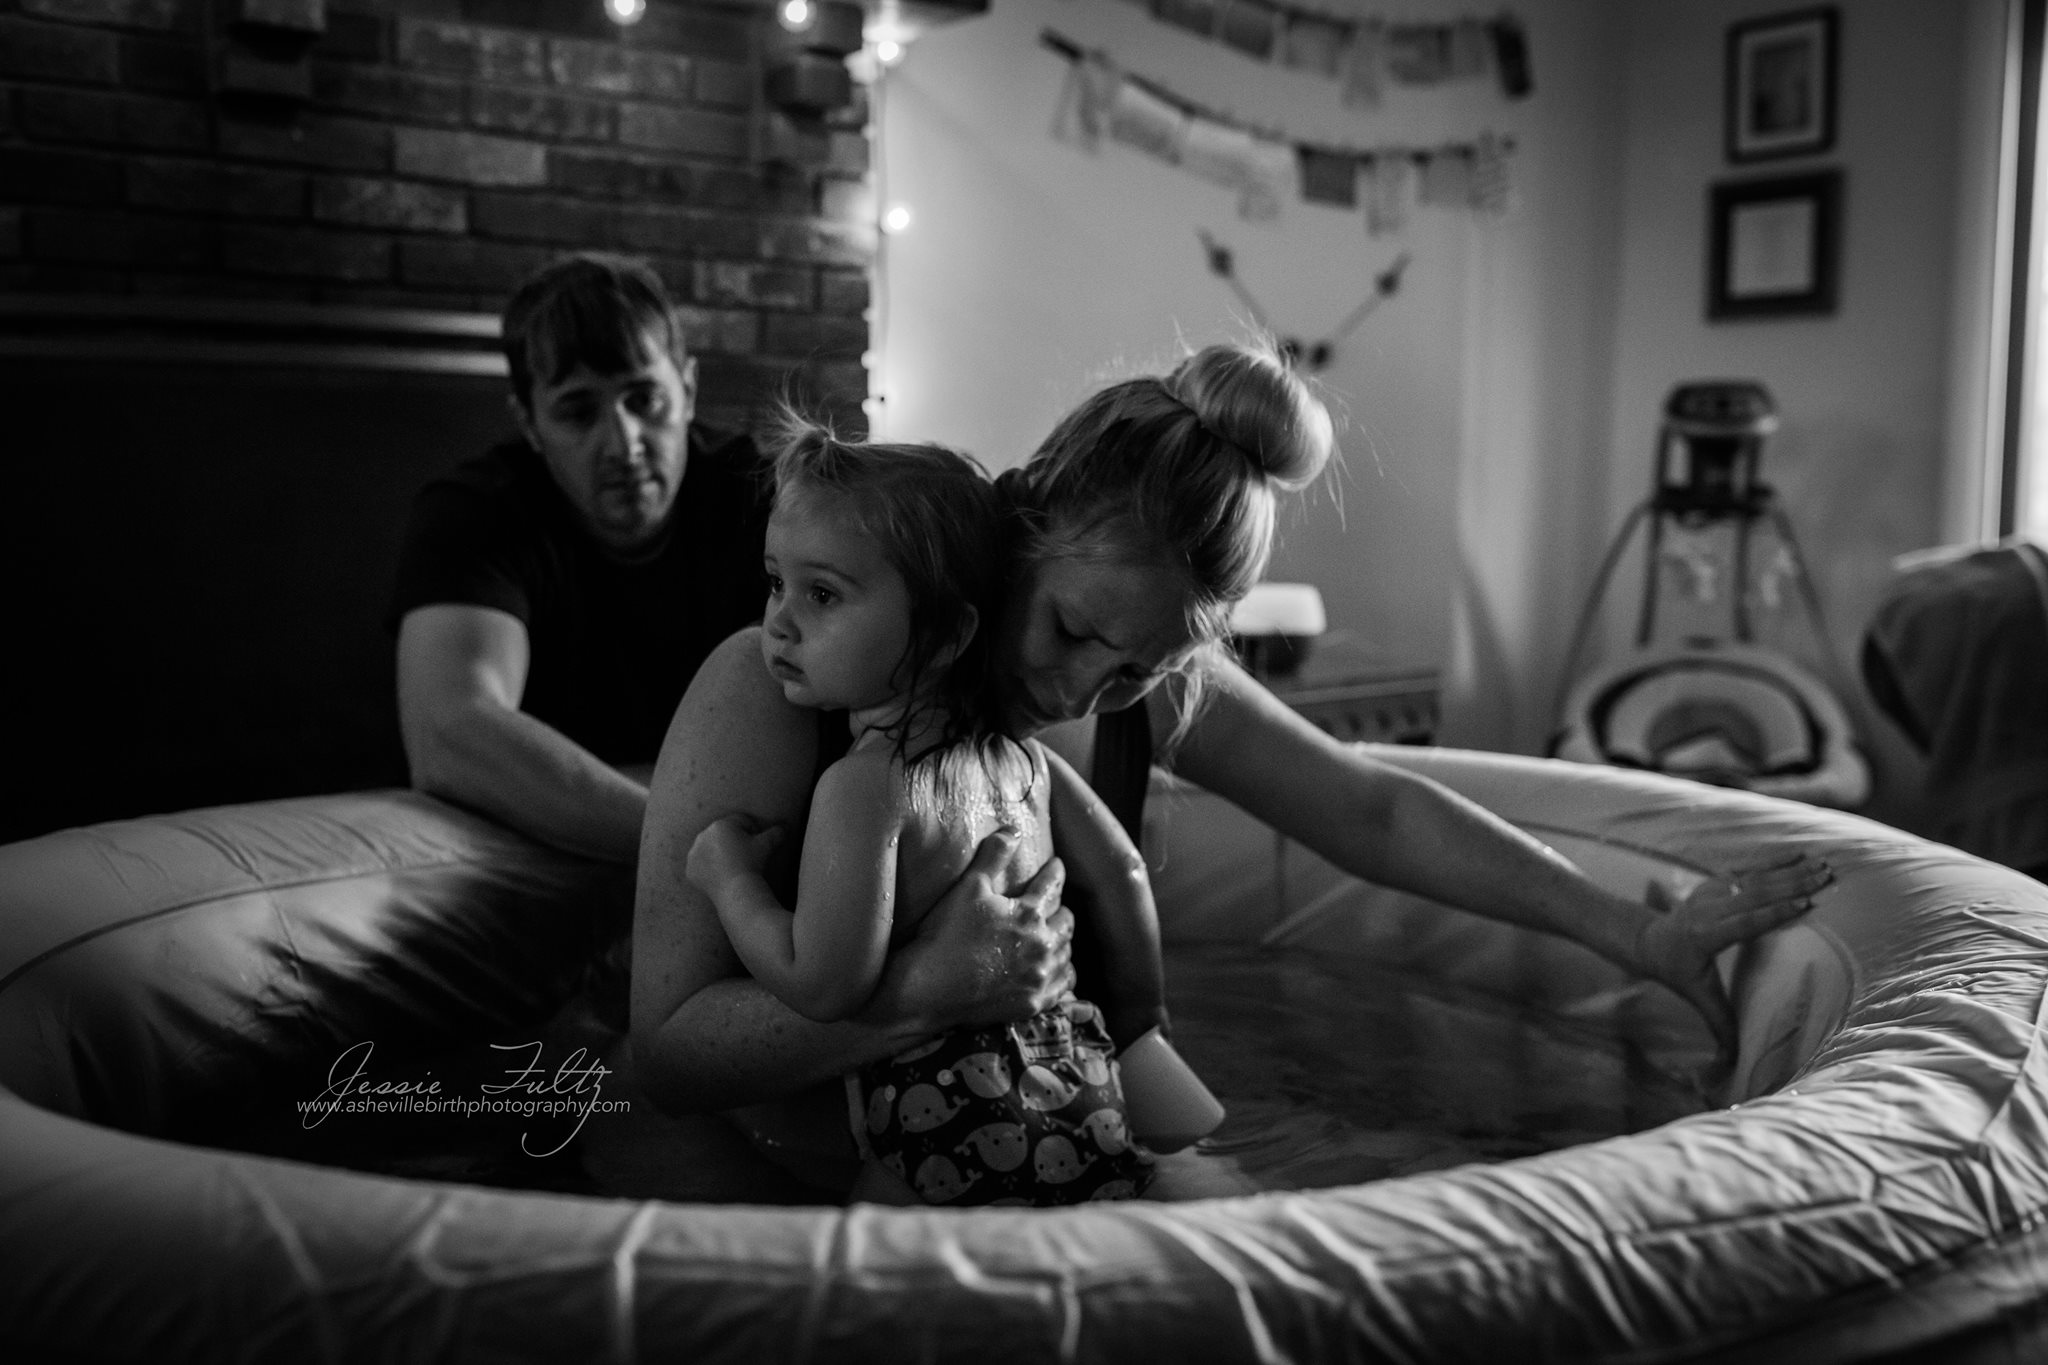 This mother leaned on her daughter during the intensity of labor. Beautiful work by J essie Fultz.